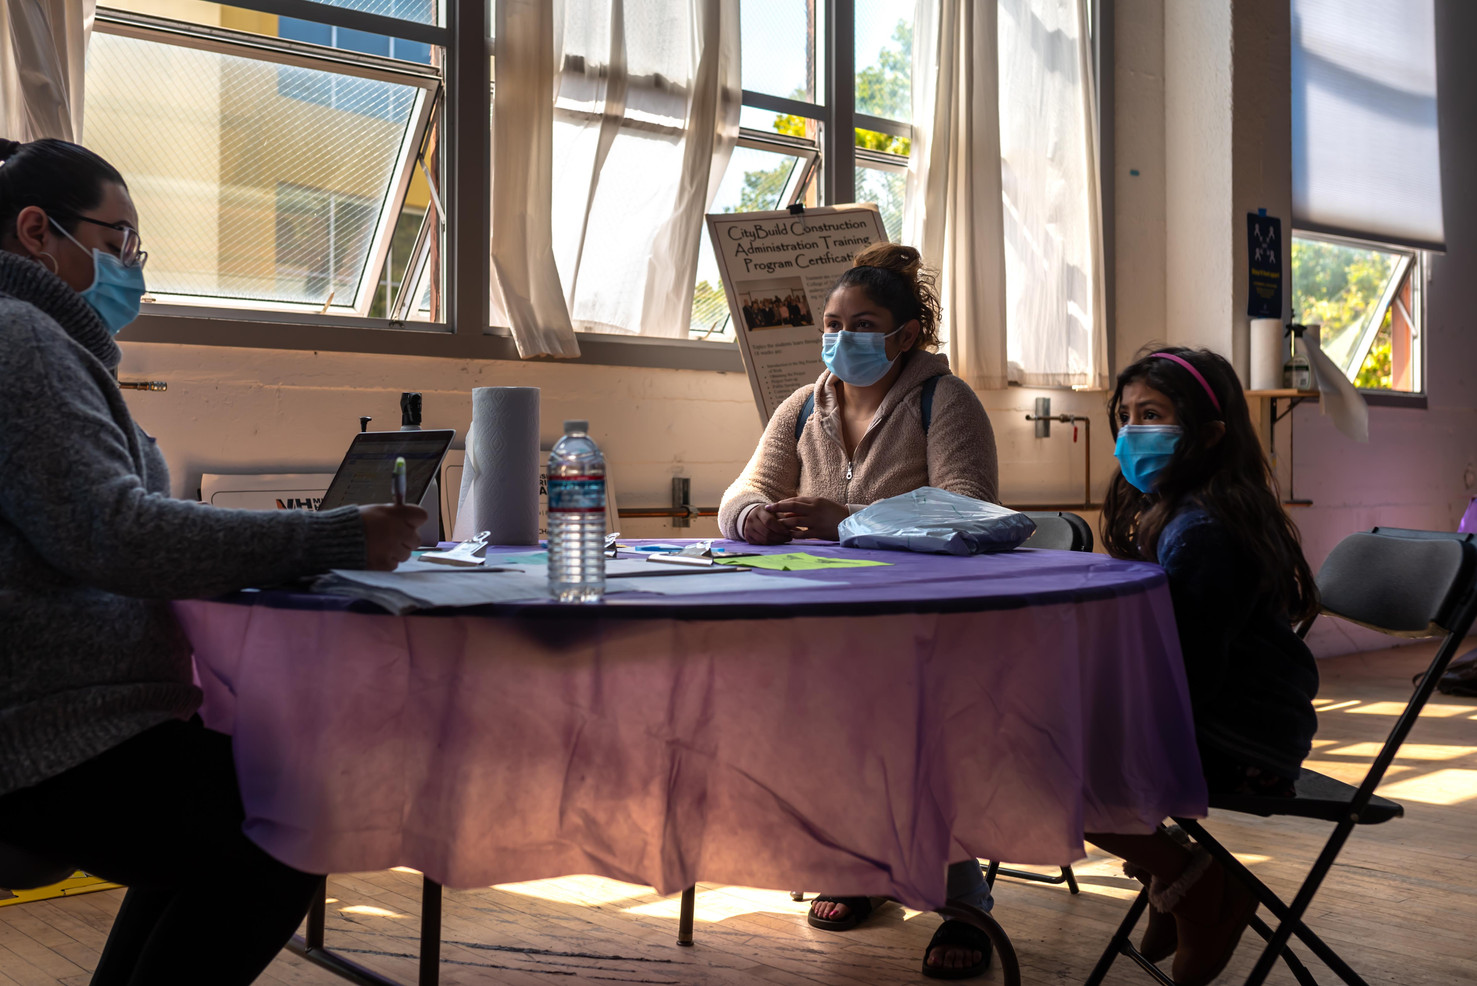 Six year old Kimberly accompanies her mother Karen Romero to apply for employment opportunities with Mission Hiring Hall at the Latino Task Force Resource Hub on 701 Alabama St. Every Thursday, the Latino Task Force for COVID-19 provides testing, food distribution, and essential services such as employment and housing resources.